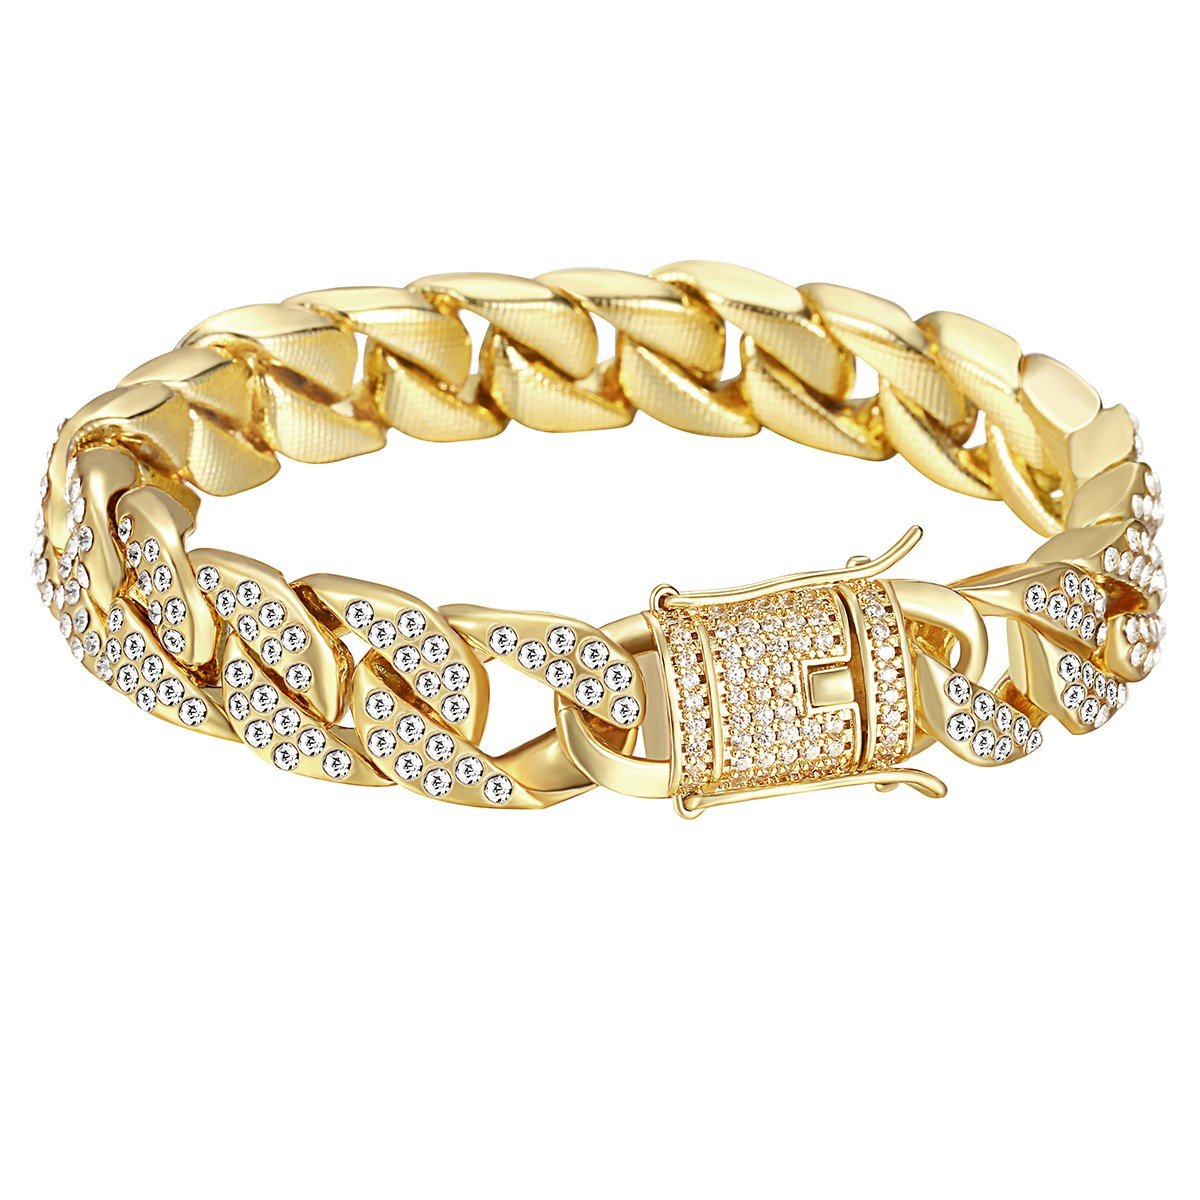 Davieslee Mens Womens Chain Hiphop Iced Out Miami Curb Cuban Gold Plated Bracelet Necklace with Clear Rhinestones DAVIESLEEDAVIESLEEGB409_10DL